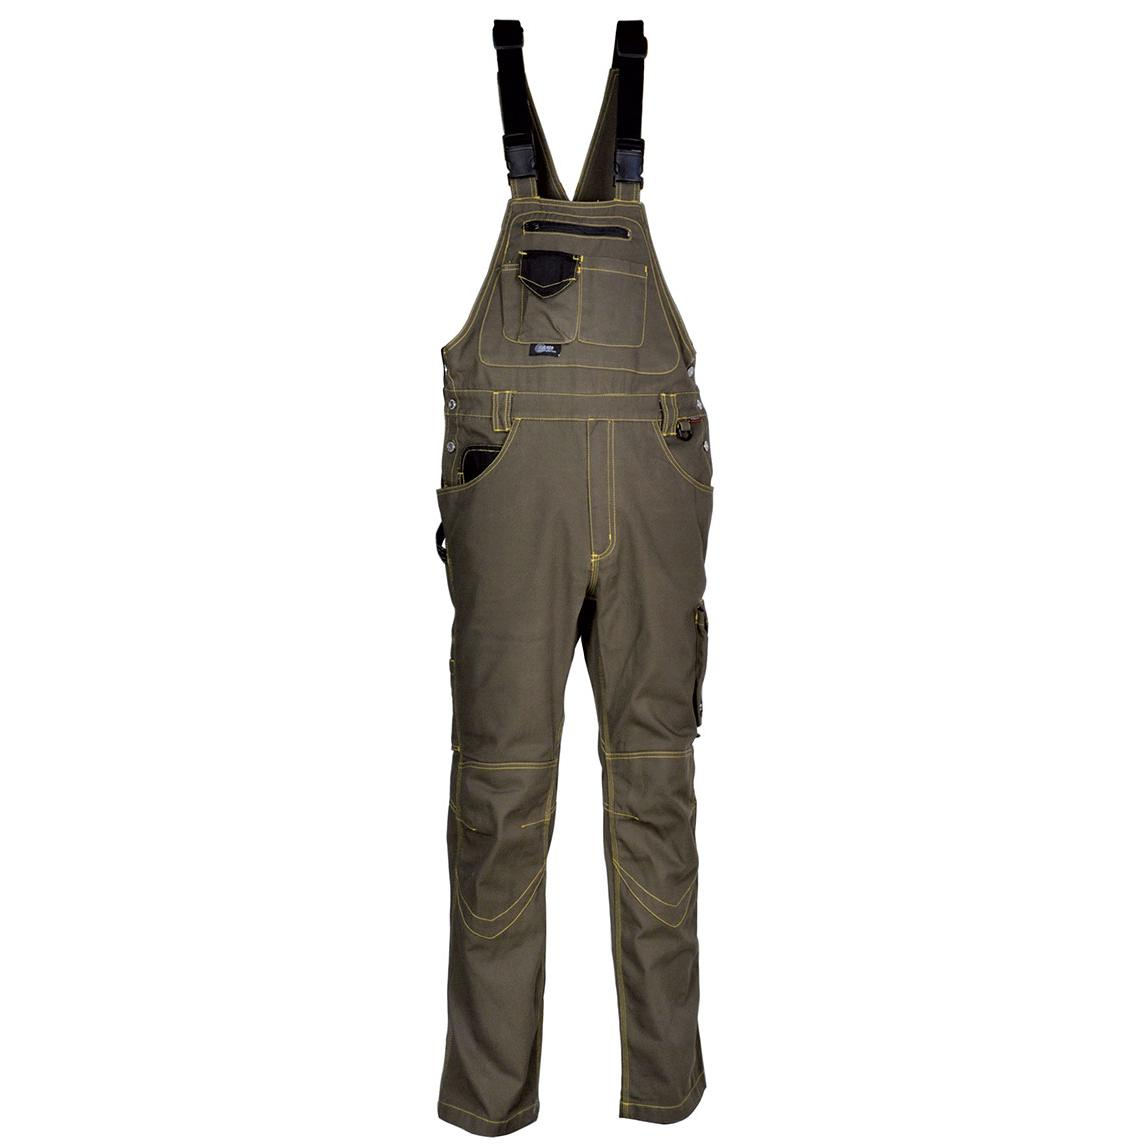 Salopette cofra pocket 290 grmq serie workwear